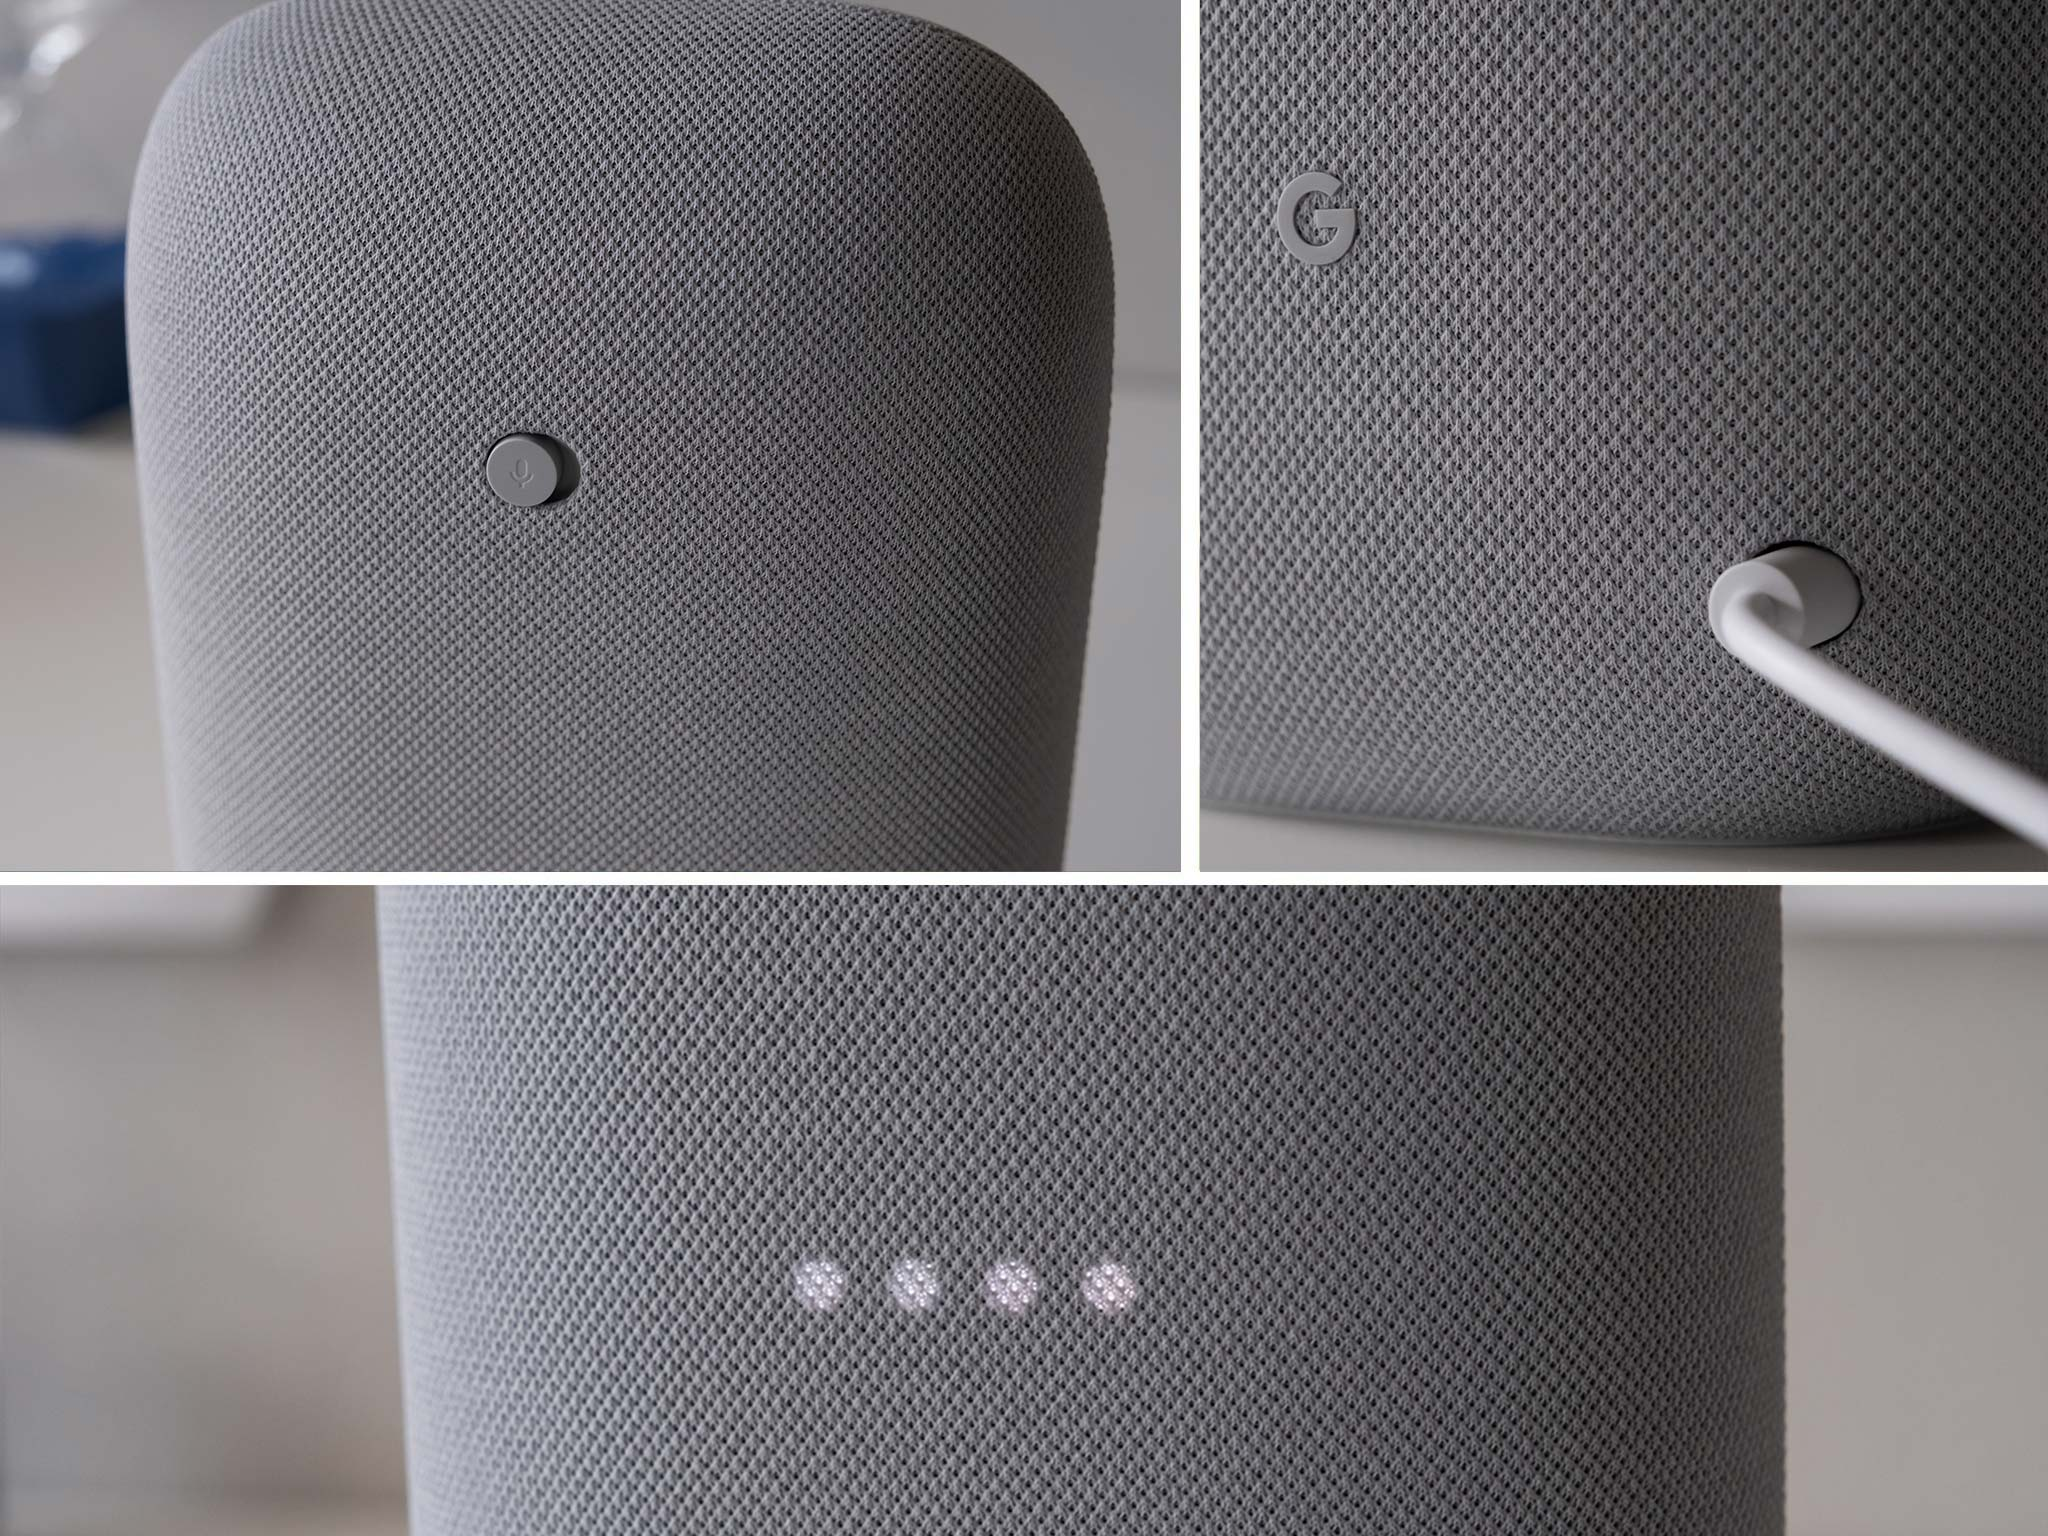 Nest Audio from different angles